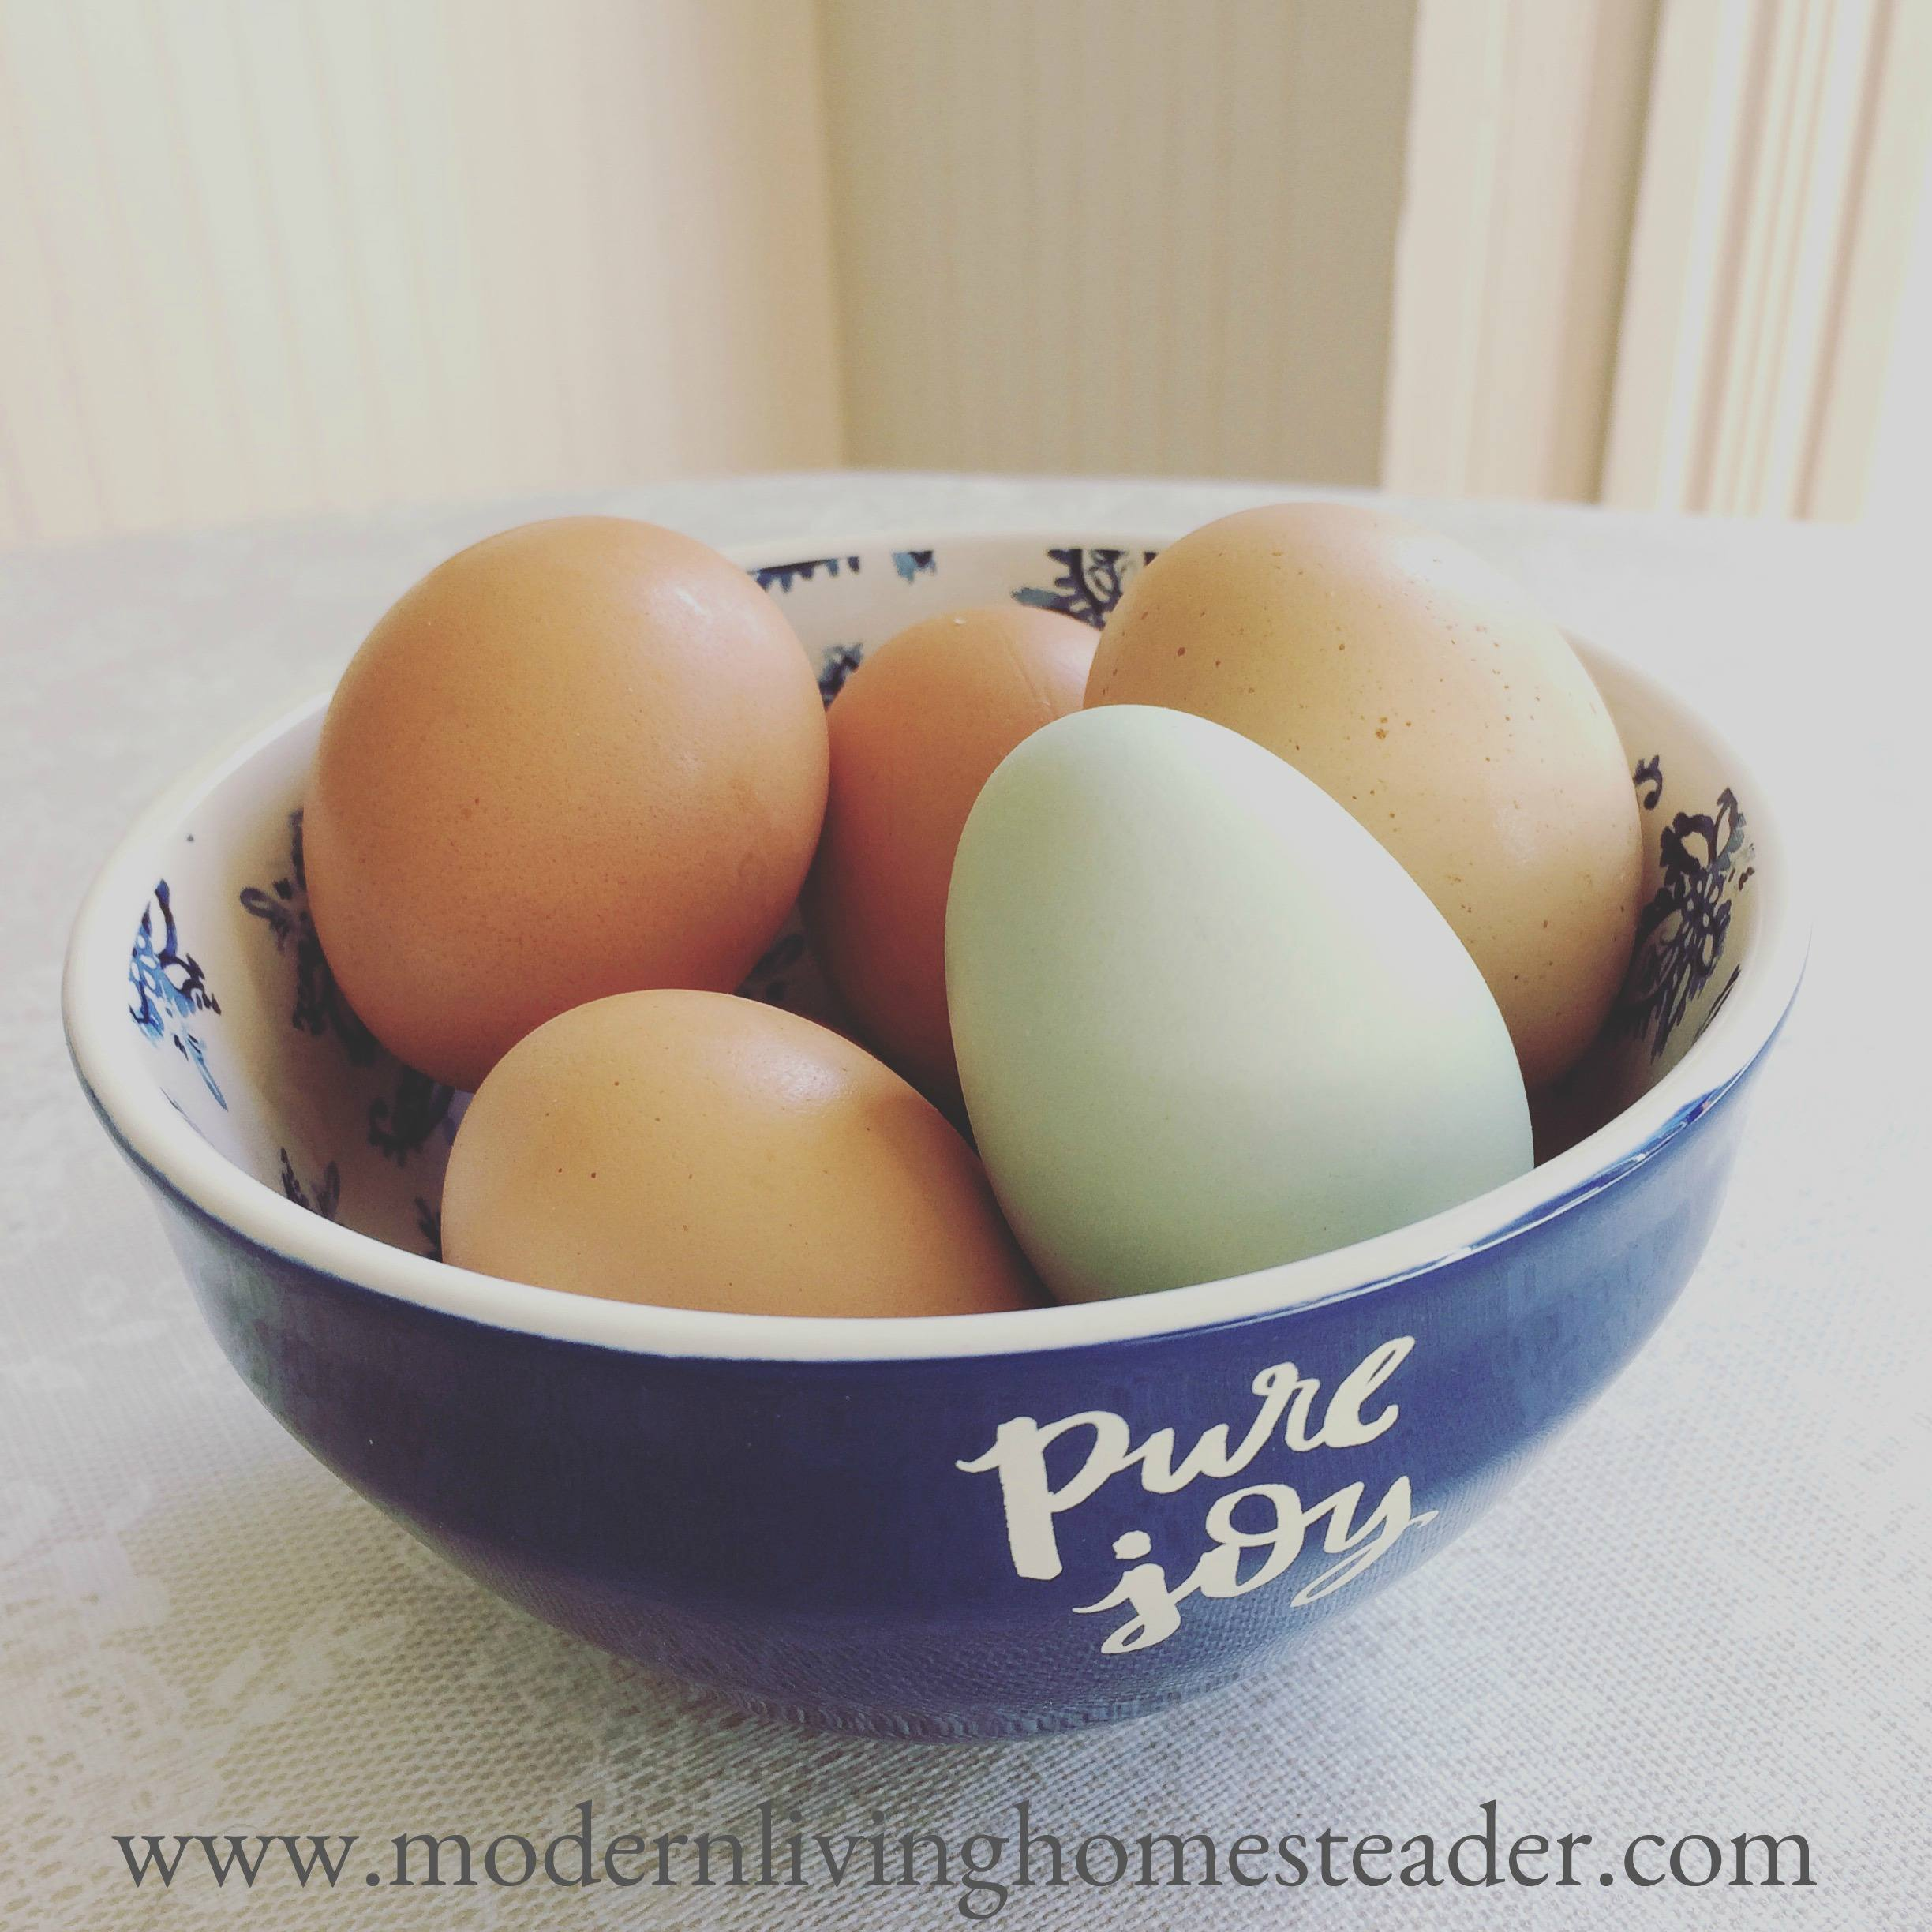 Despite pretty labels in the supermarket egg case, it's not easy to understand what you are buying. This post explains the differences, and why they matter. www.modernlivinghomesteader.com